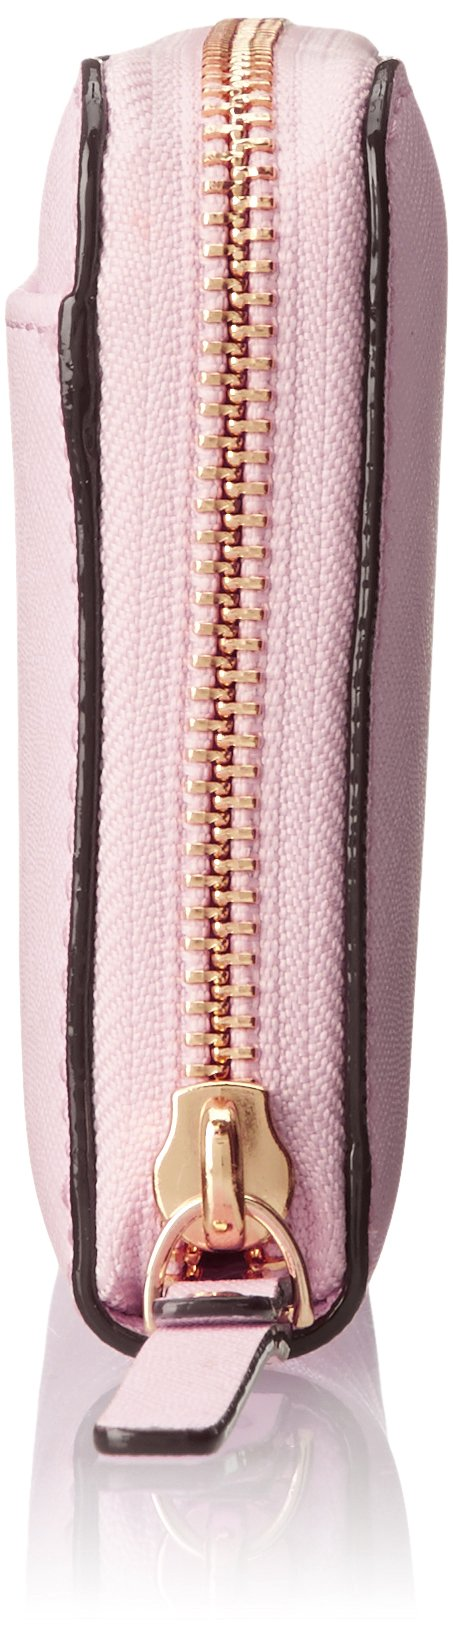 kate spade new york Cedar Street Lacey Wallet, Pink Blush, One Size by Kate Spade New York (Image #3)